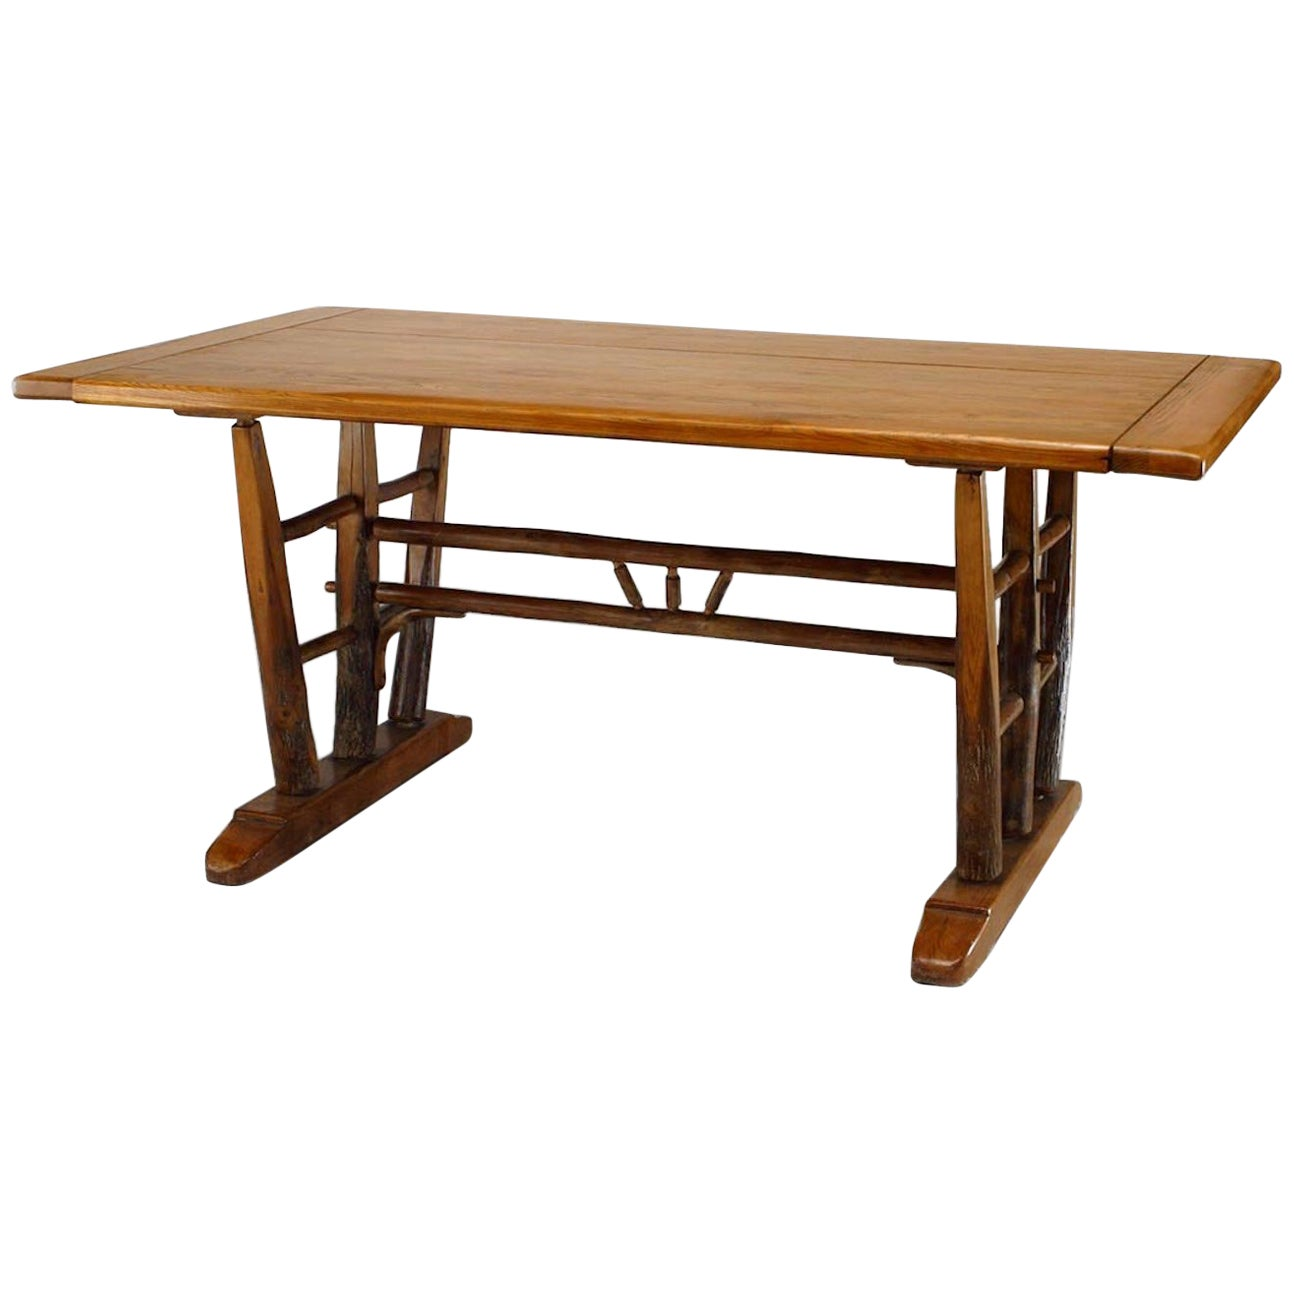 Rustic Old Hickory Dining Table with Trestle Supports